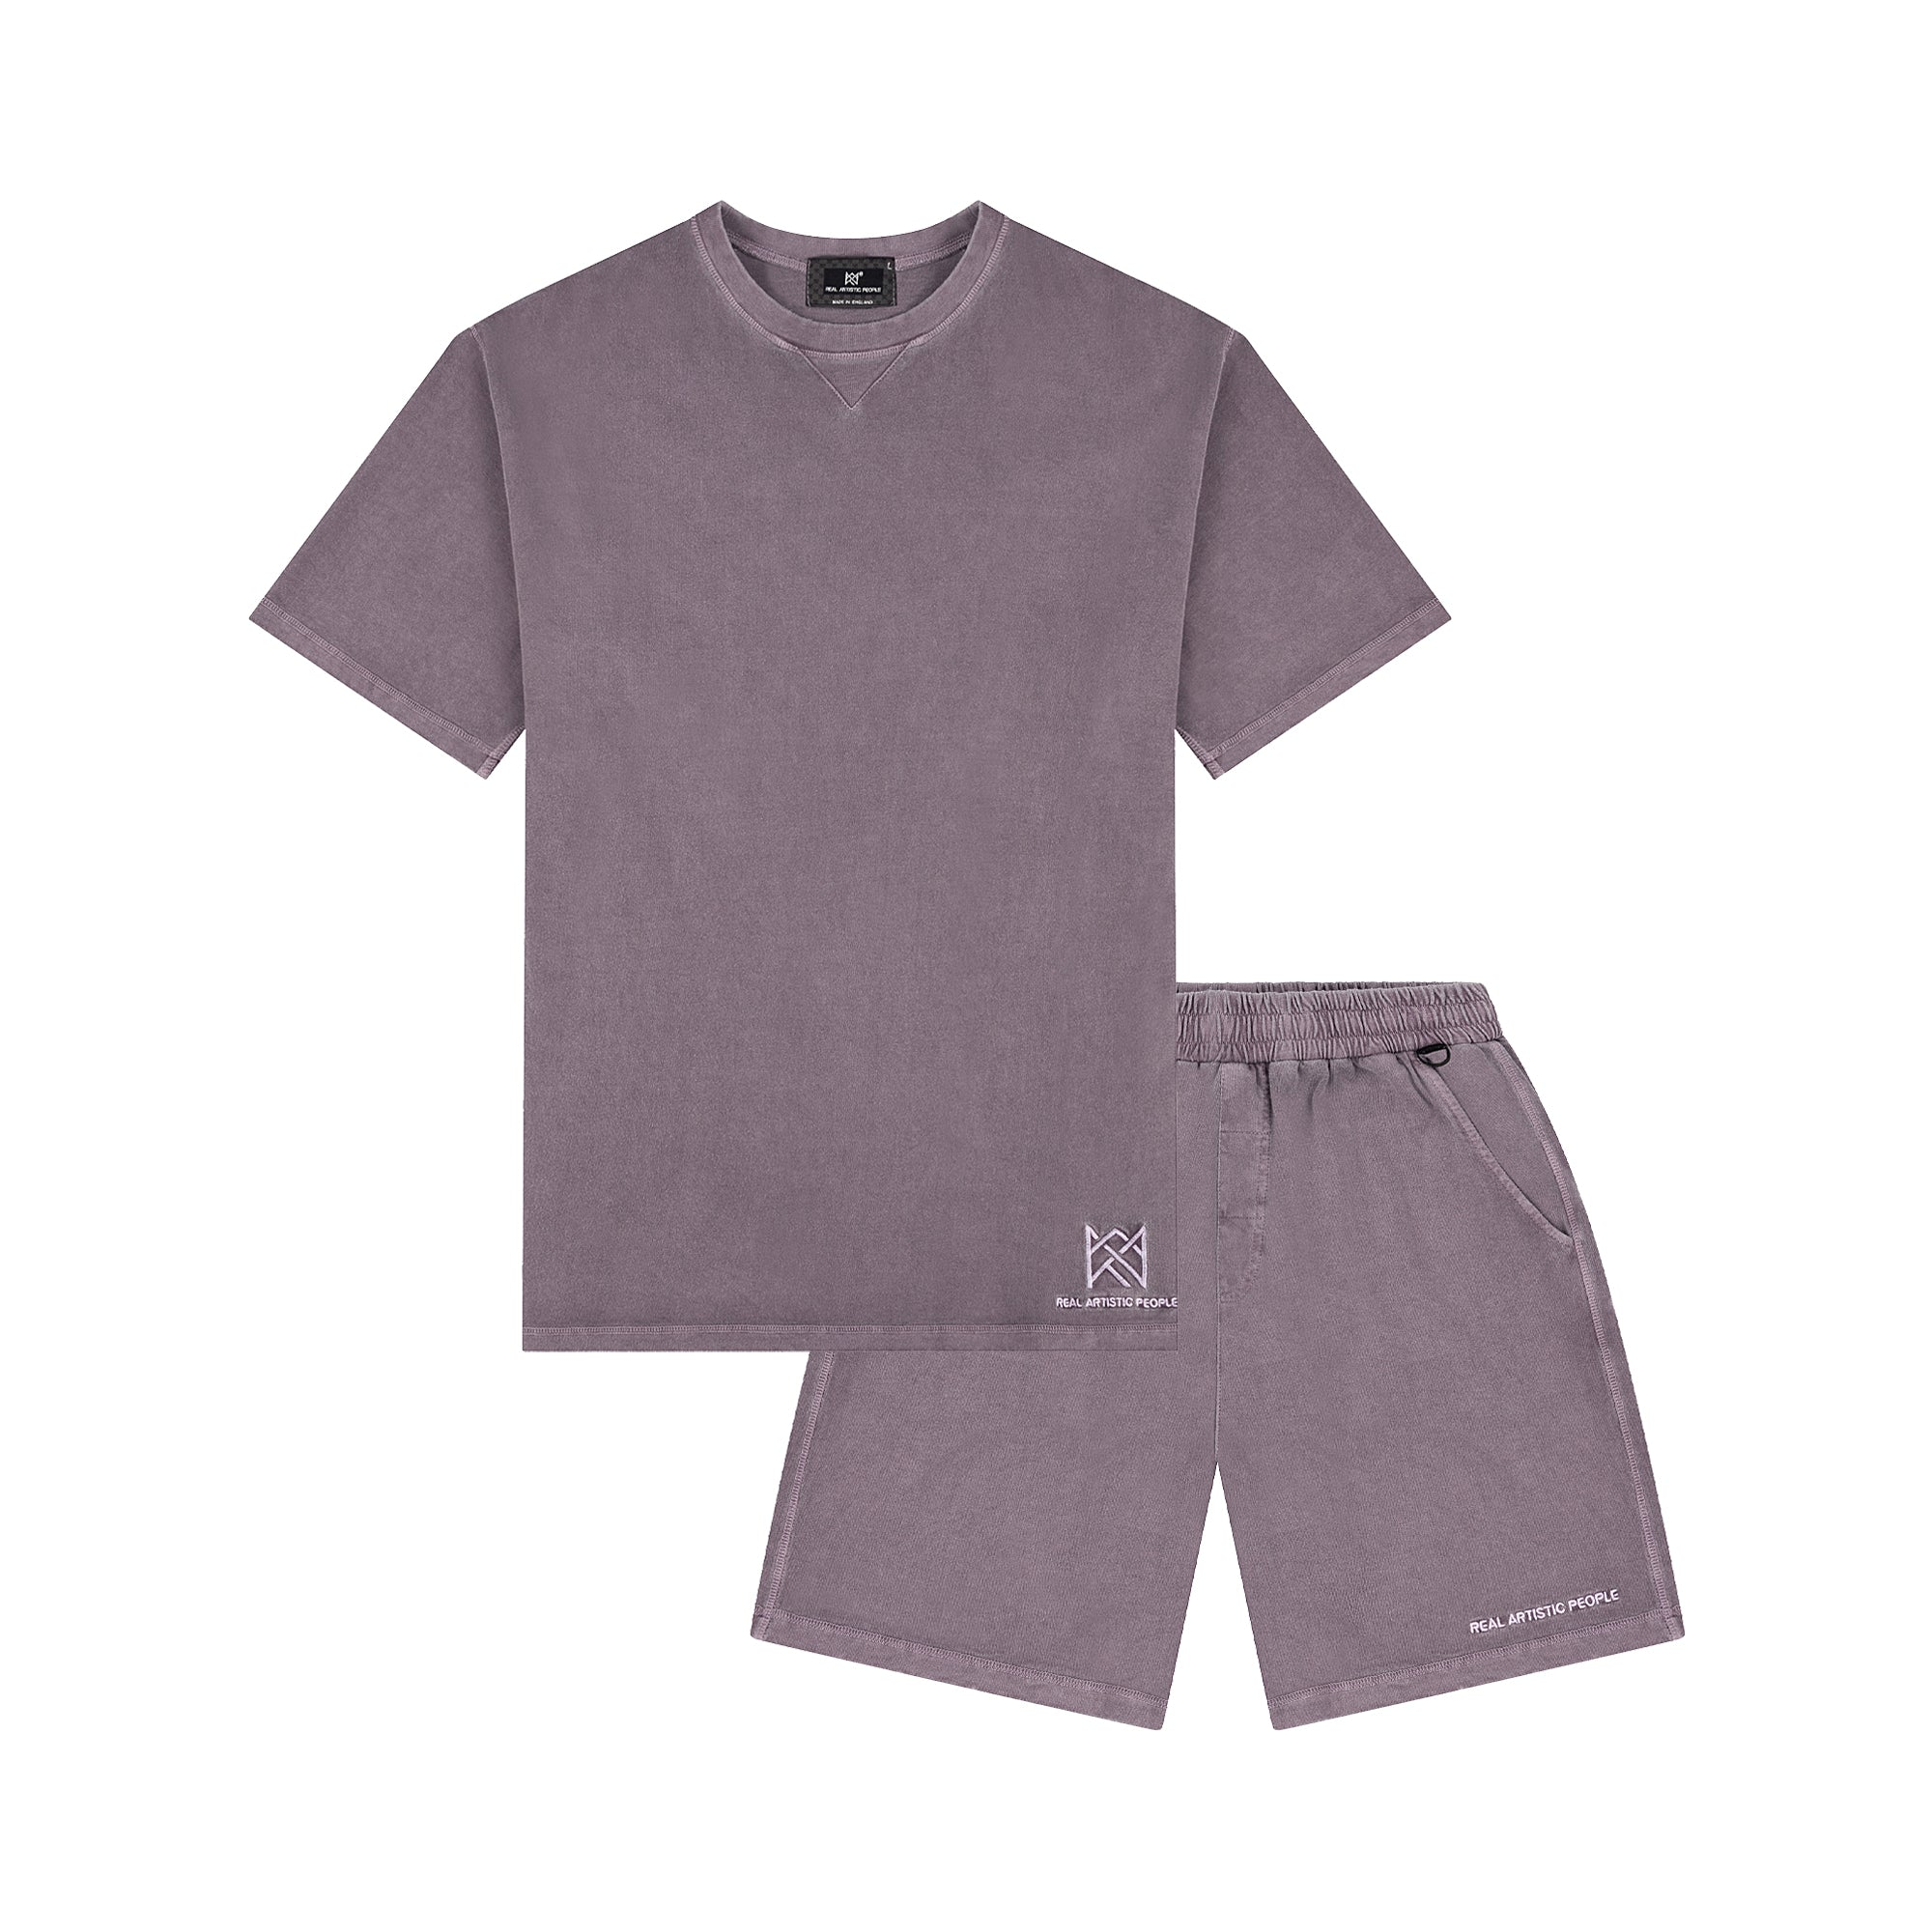 HEIR TEE AND SHORTS TWIN SET - VINTAGE PURPLE